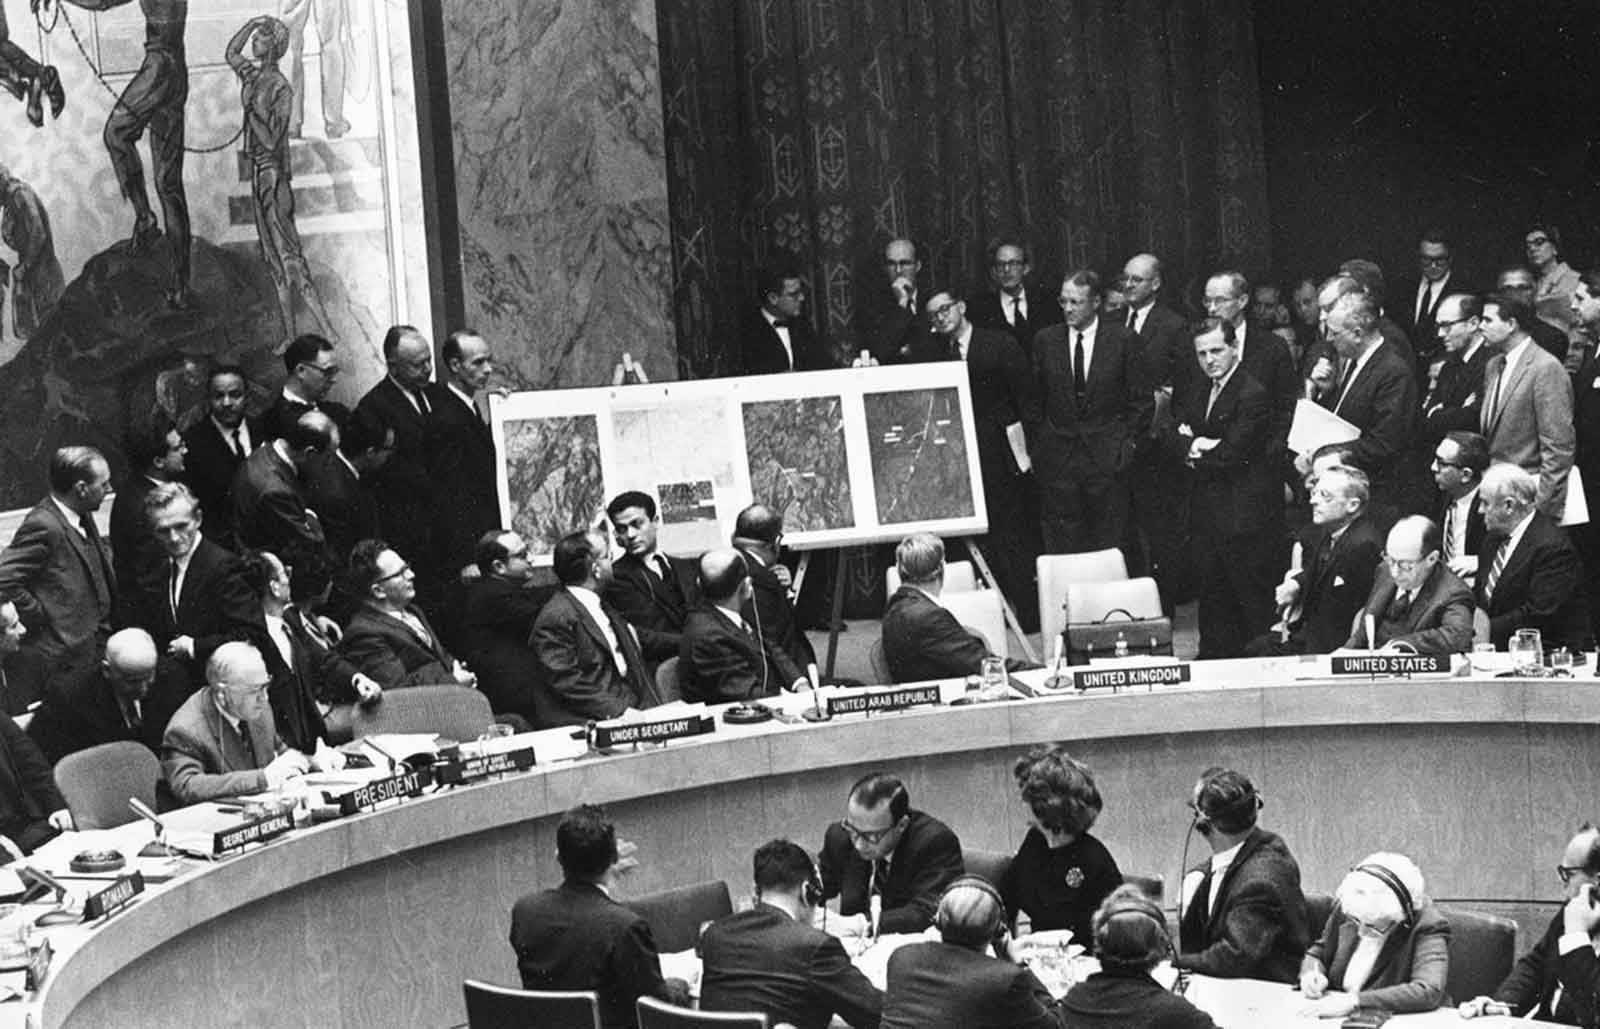 U.S. Ambassador to the United Nations, Adlai Stevenson, second from right, confronts Soviet delegate Valerian Zorin, first on left, with a display of reconnaissance photographs during emergency session of the U.N. Security Council at the United Nations headquarters in New York, on October 25, 1962.